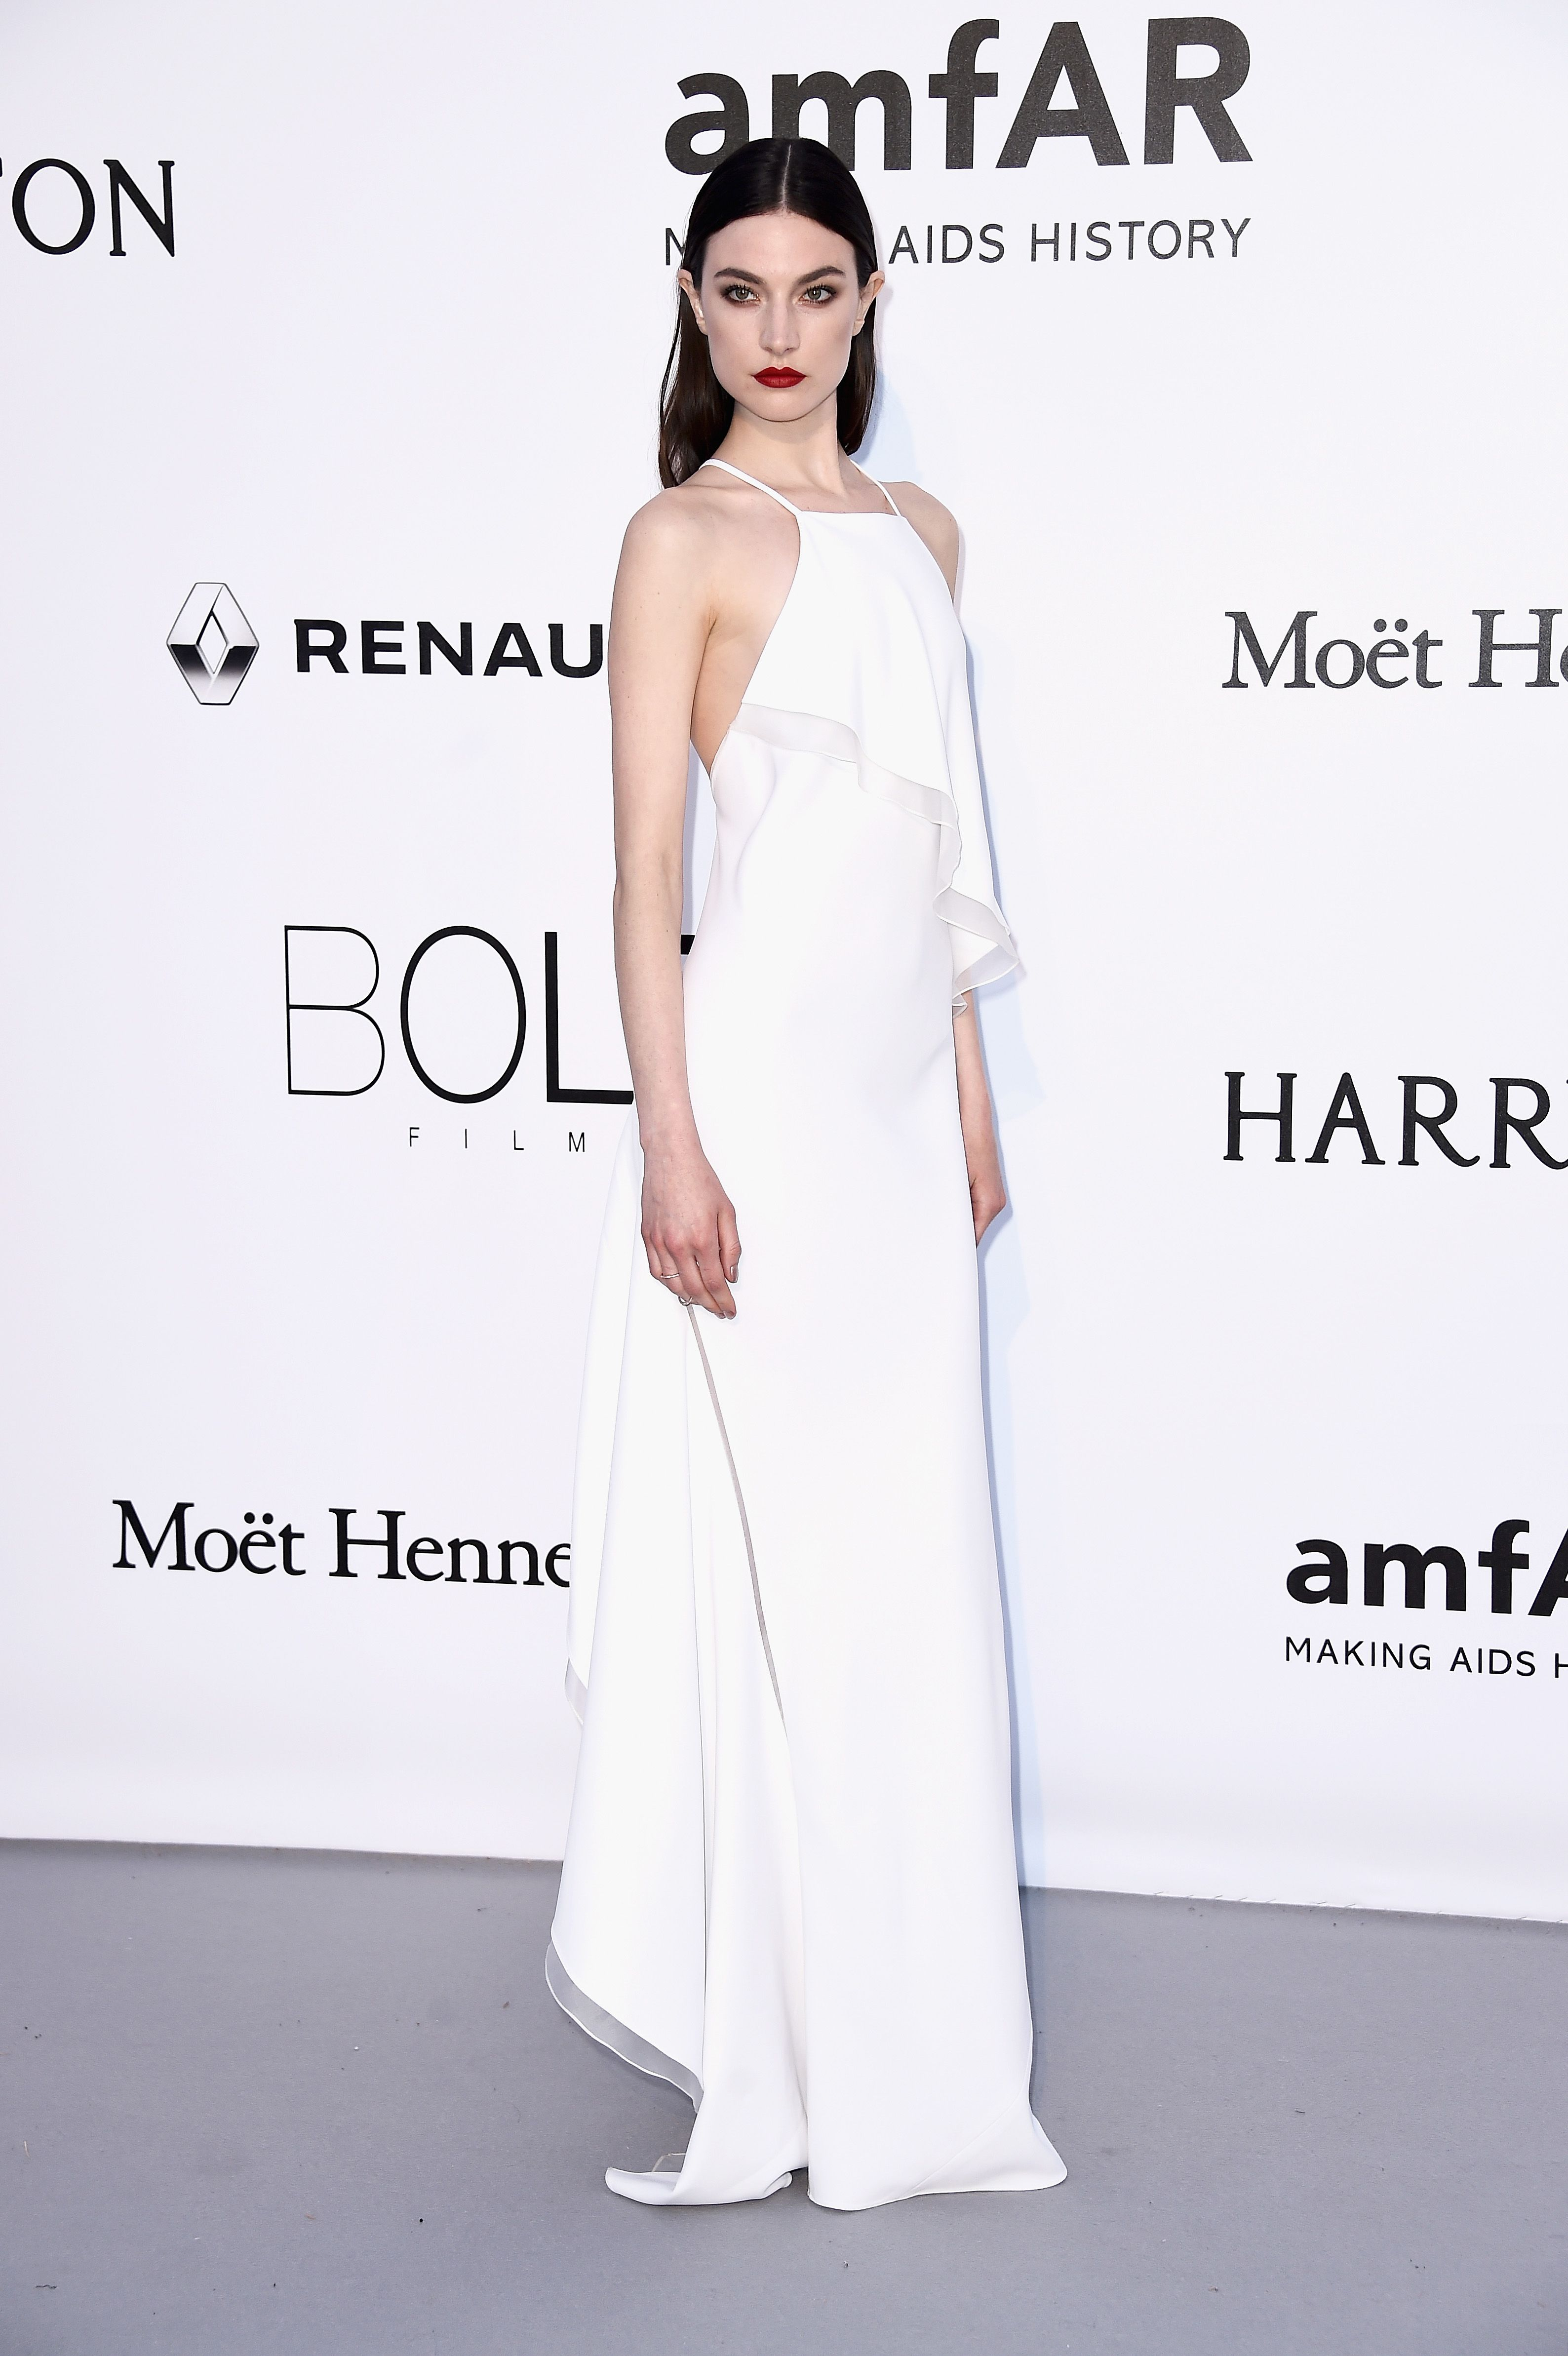 photo 20 Next-Level Gowns From the Cannes amfARGala